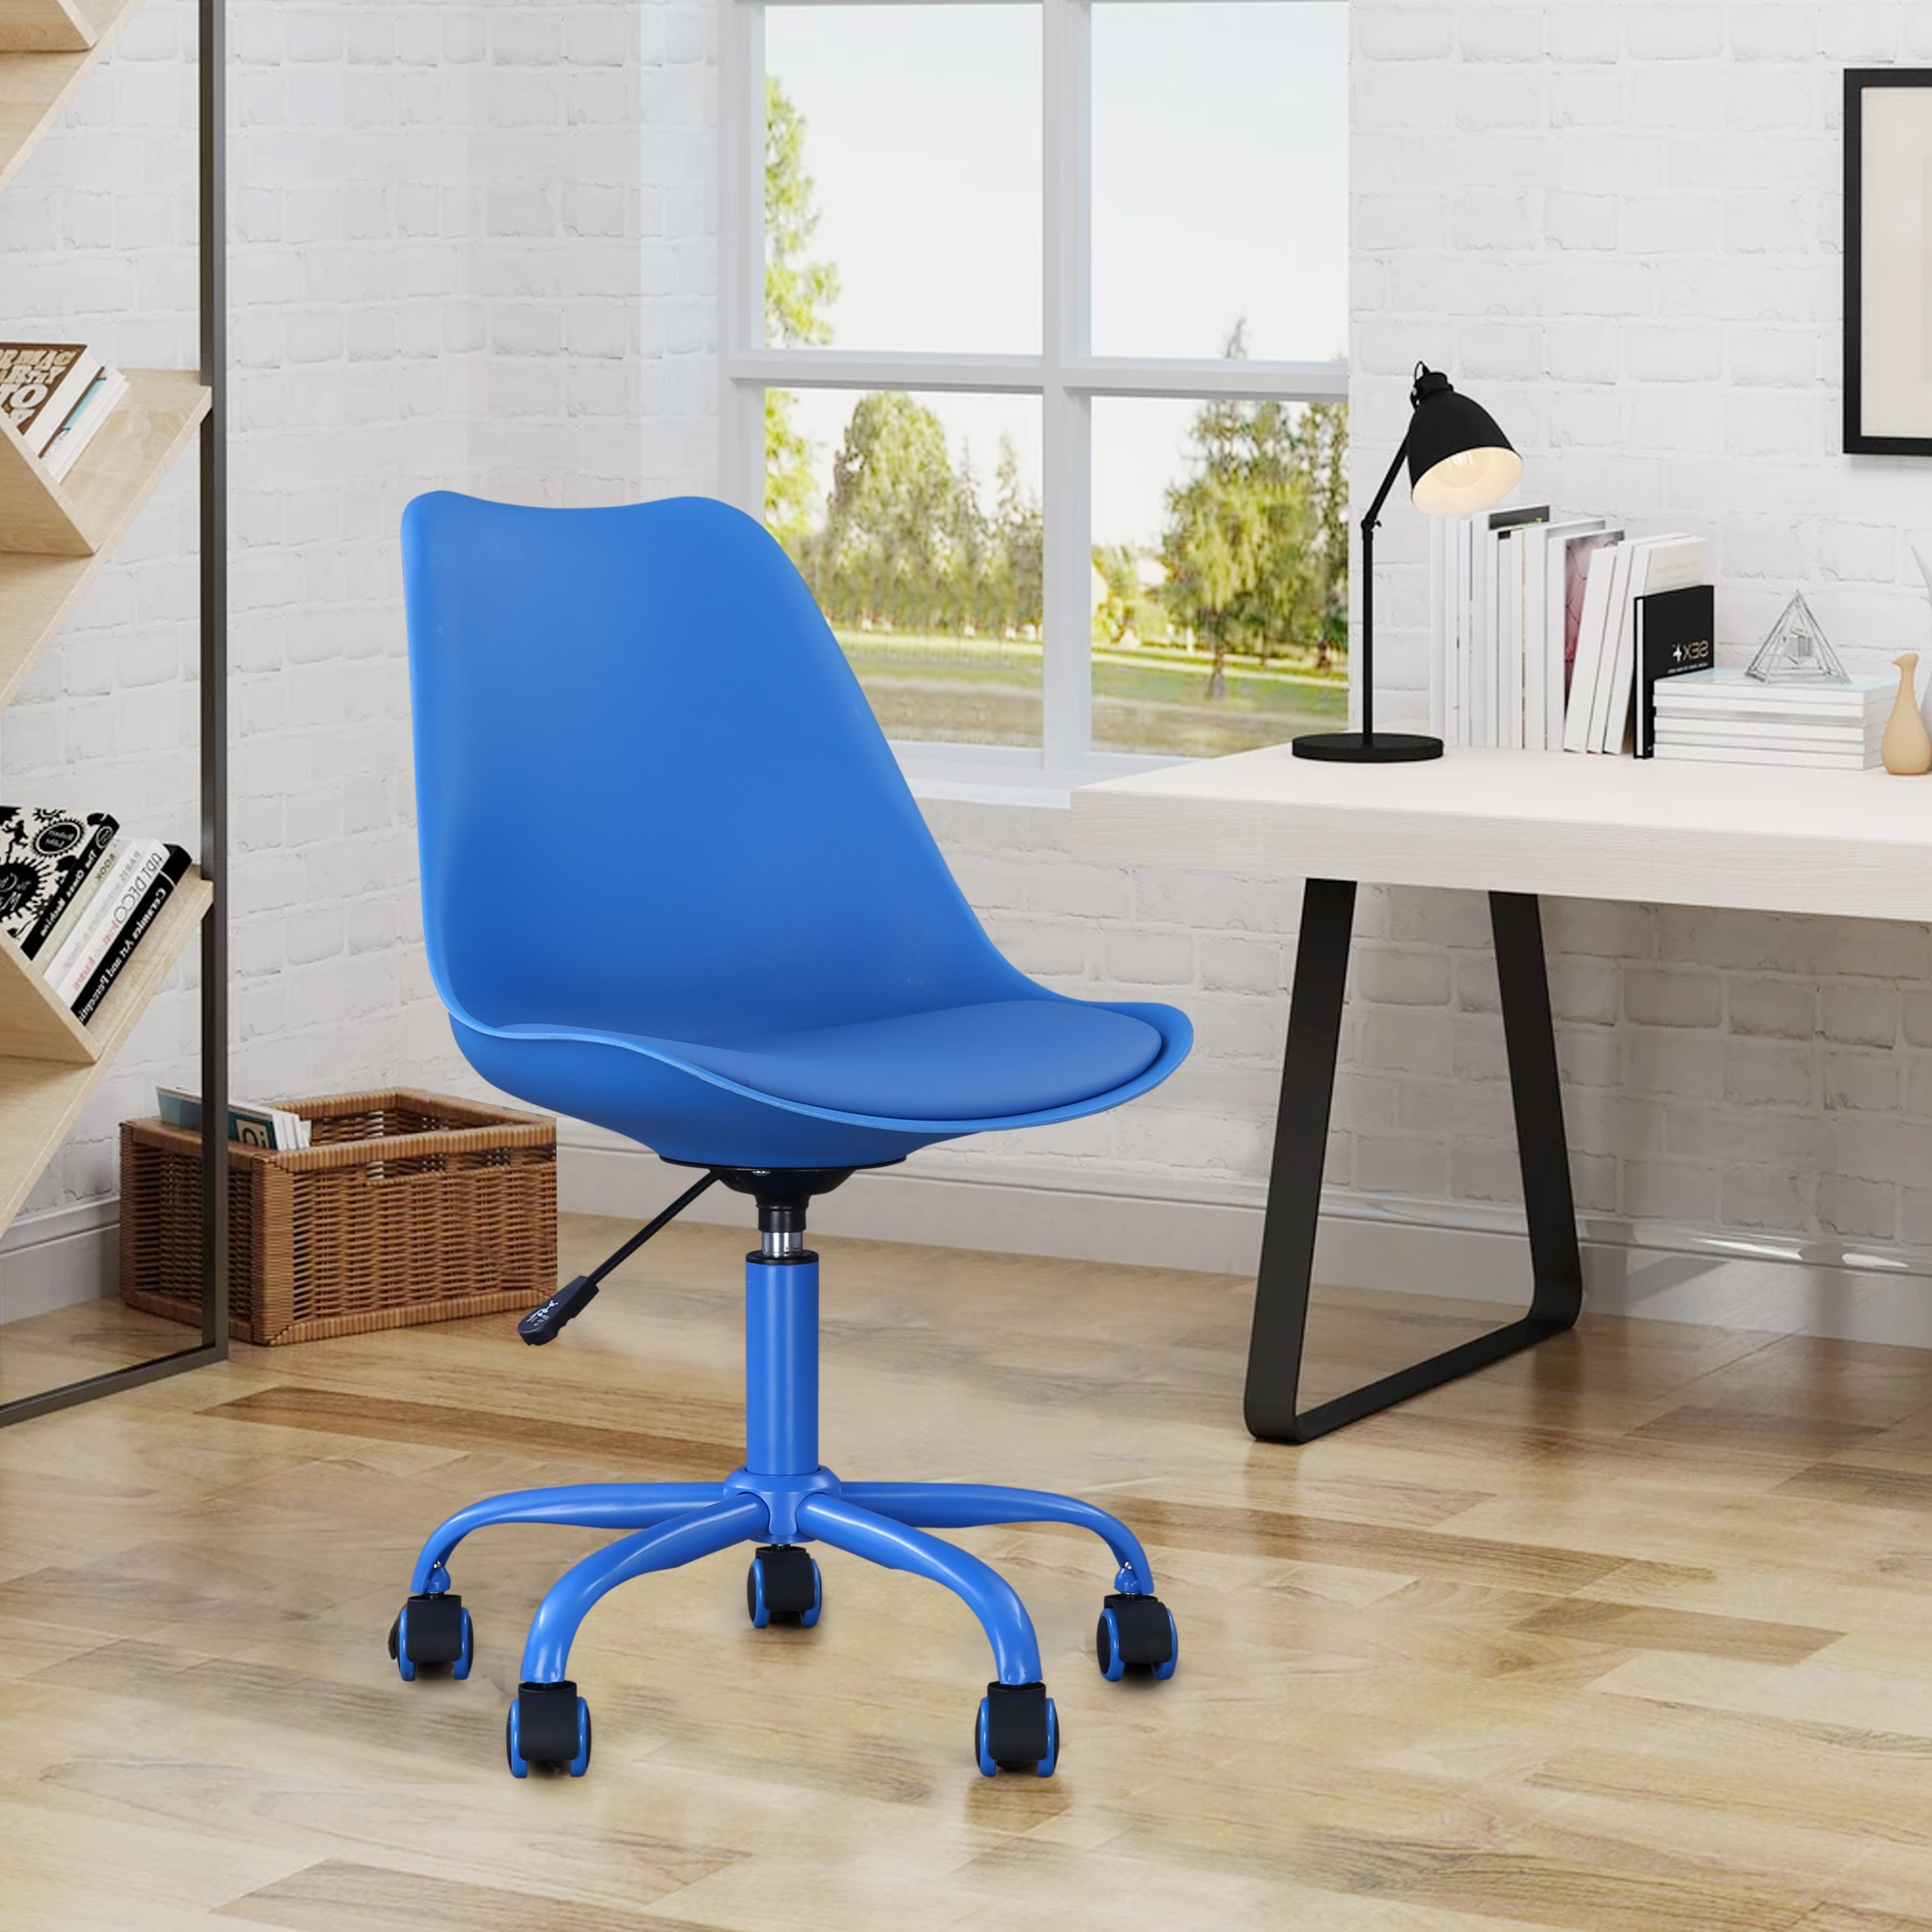 Junior Plastic Study Chair in Blue Color by HomeTown